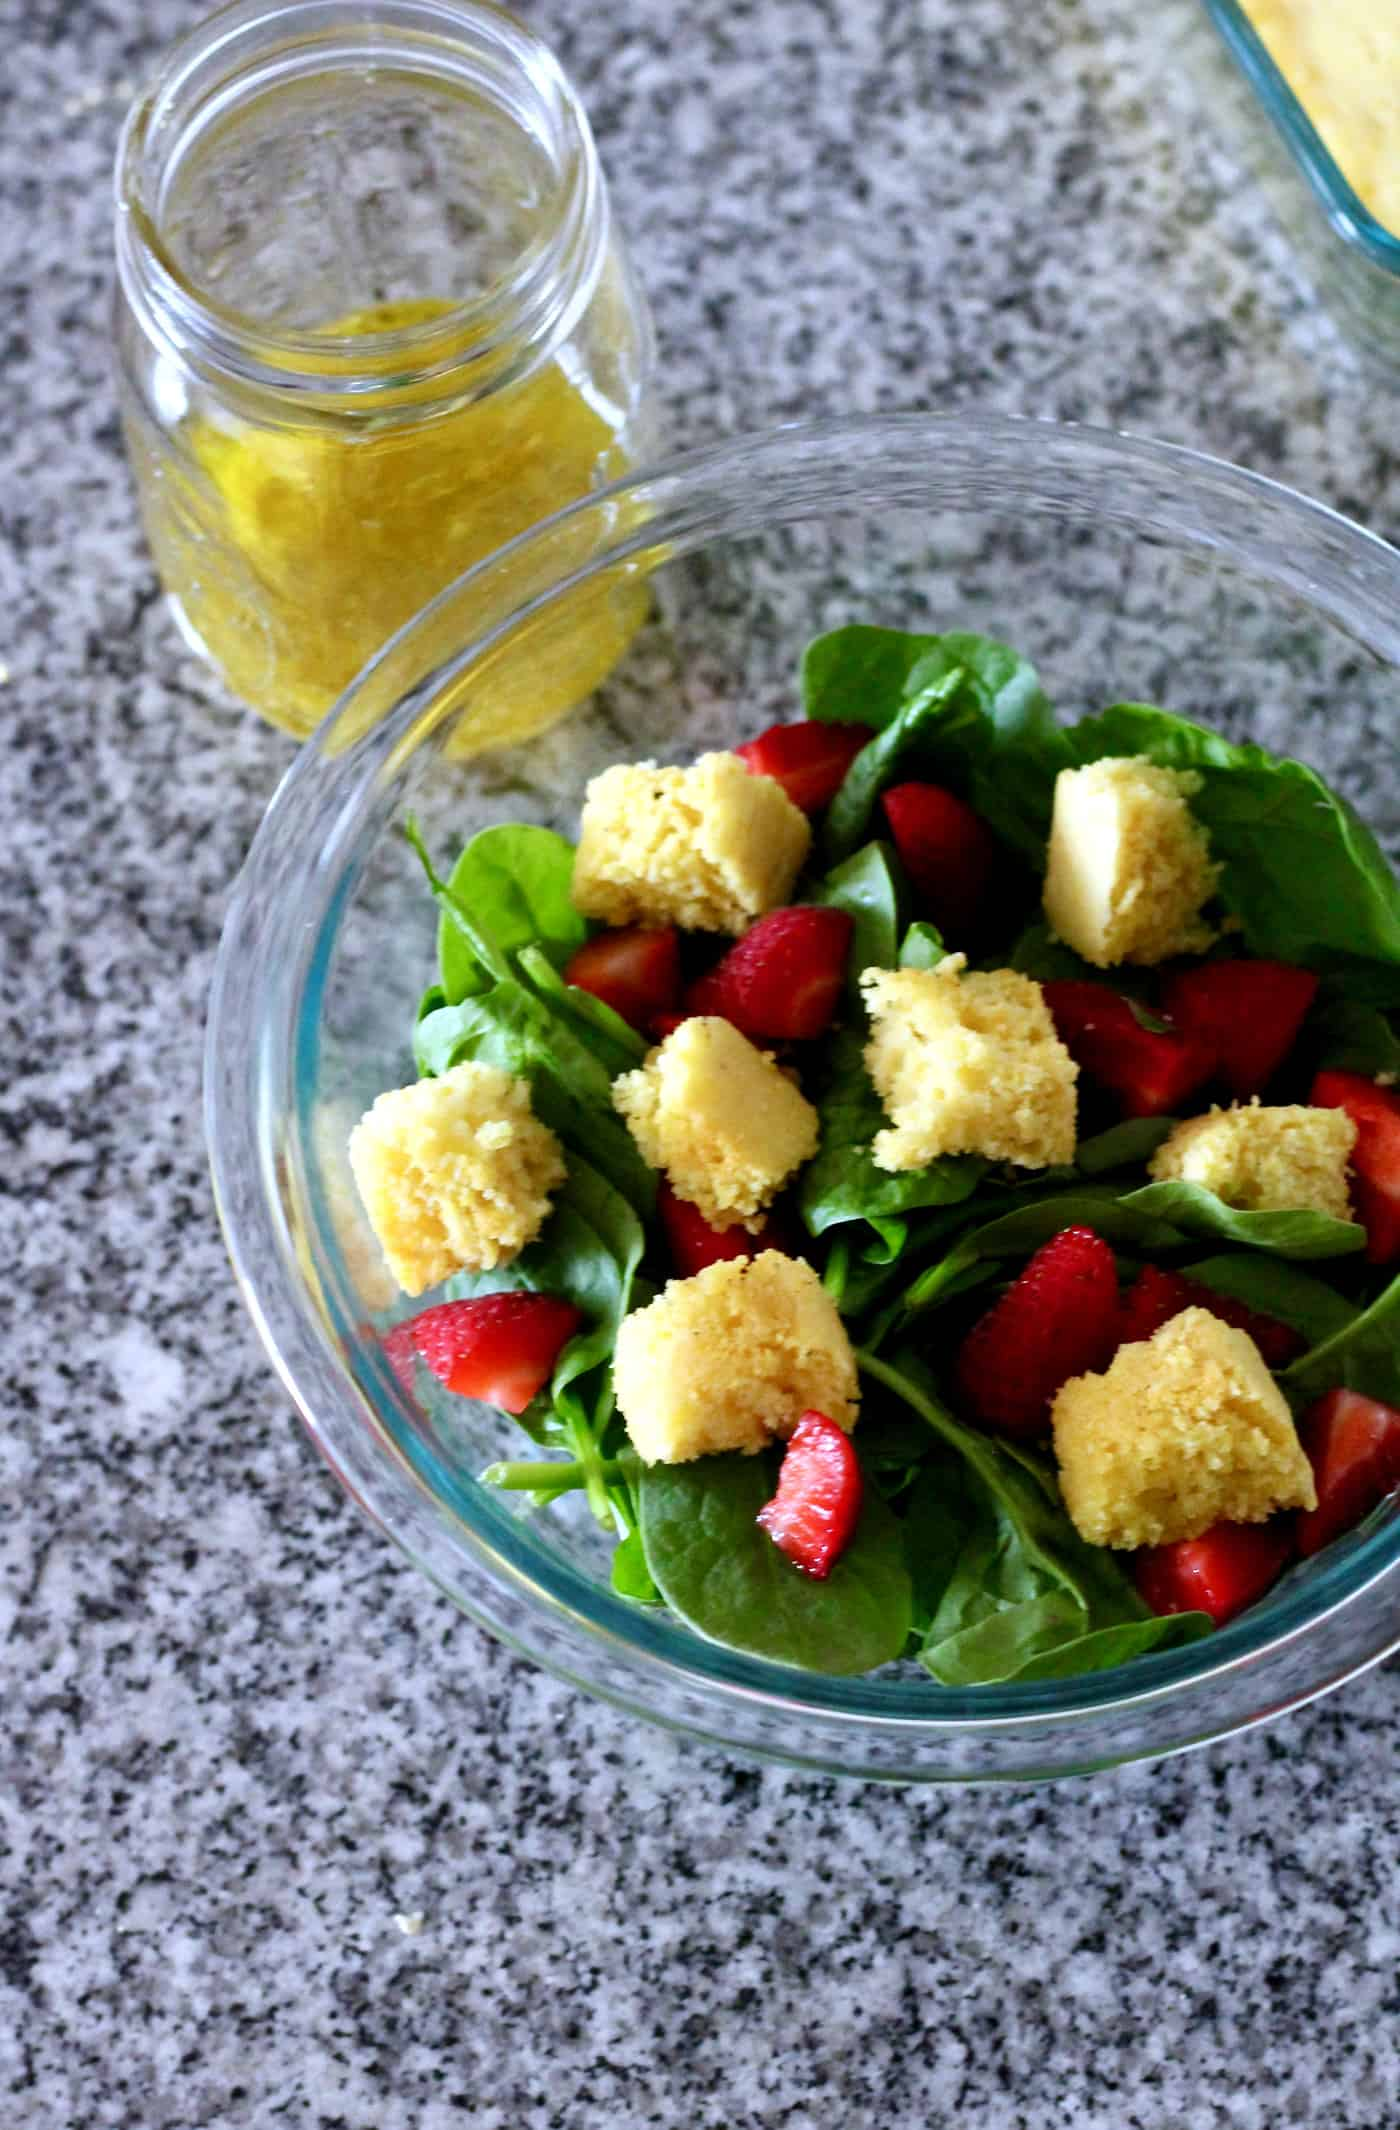 Simple Strawberry Spinach Salad with Cornbread Croutons